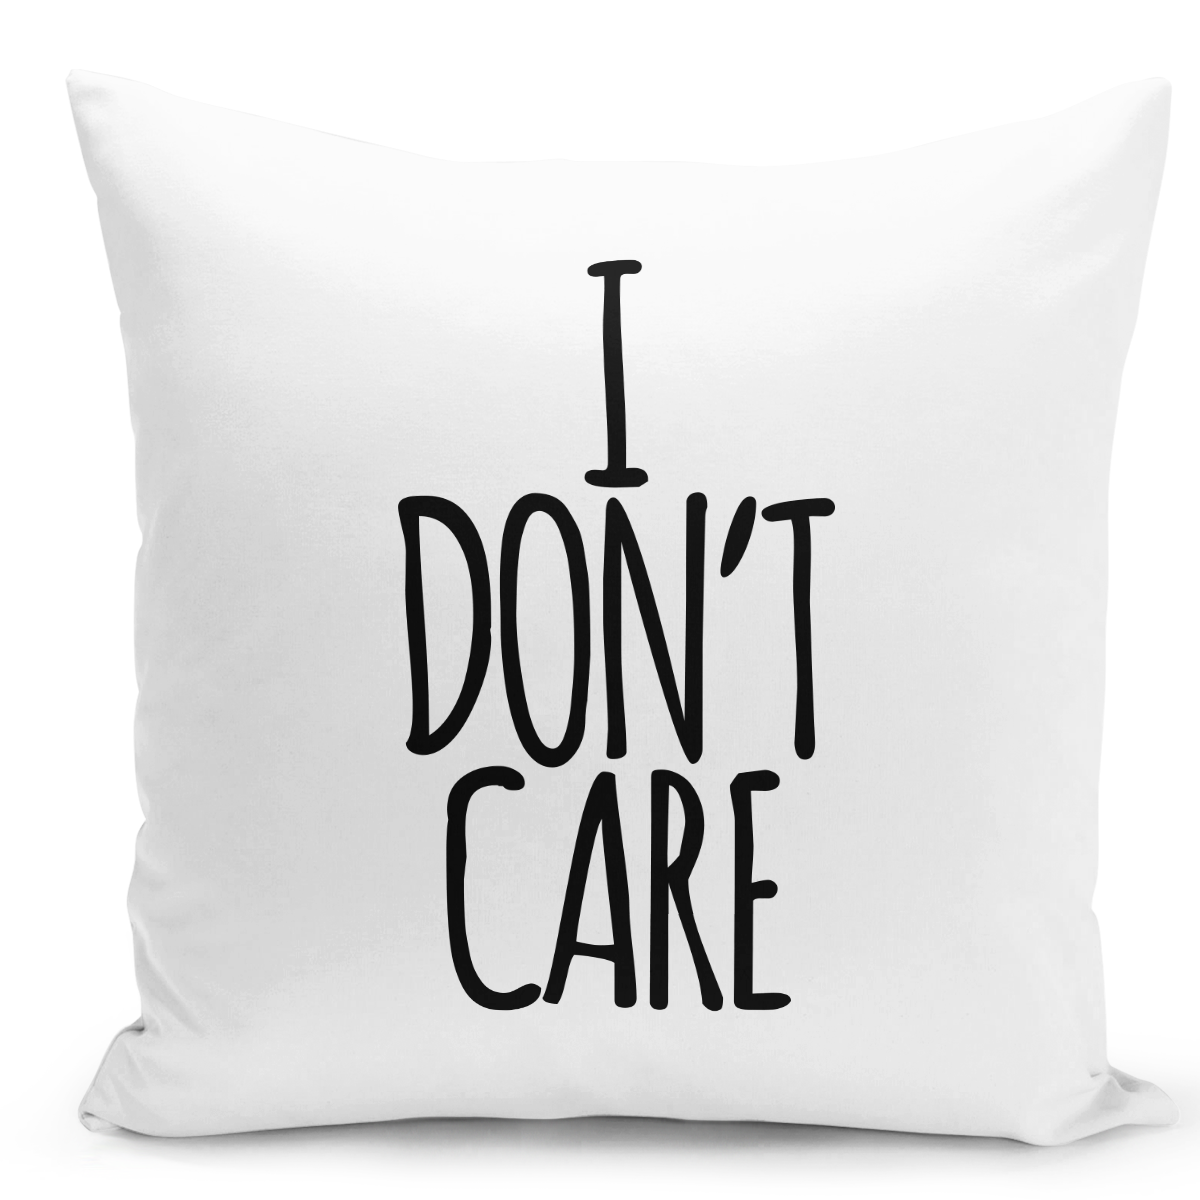 White-Throw-Pillow-i-Dont-Care---Durable-White-Polyester-16-x-16-inch-Square-Modern-Home-Decor-Printed-Pillow-